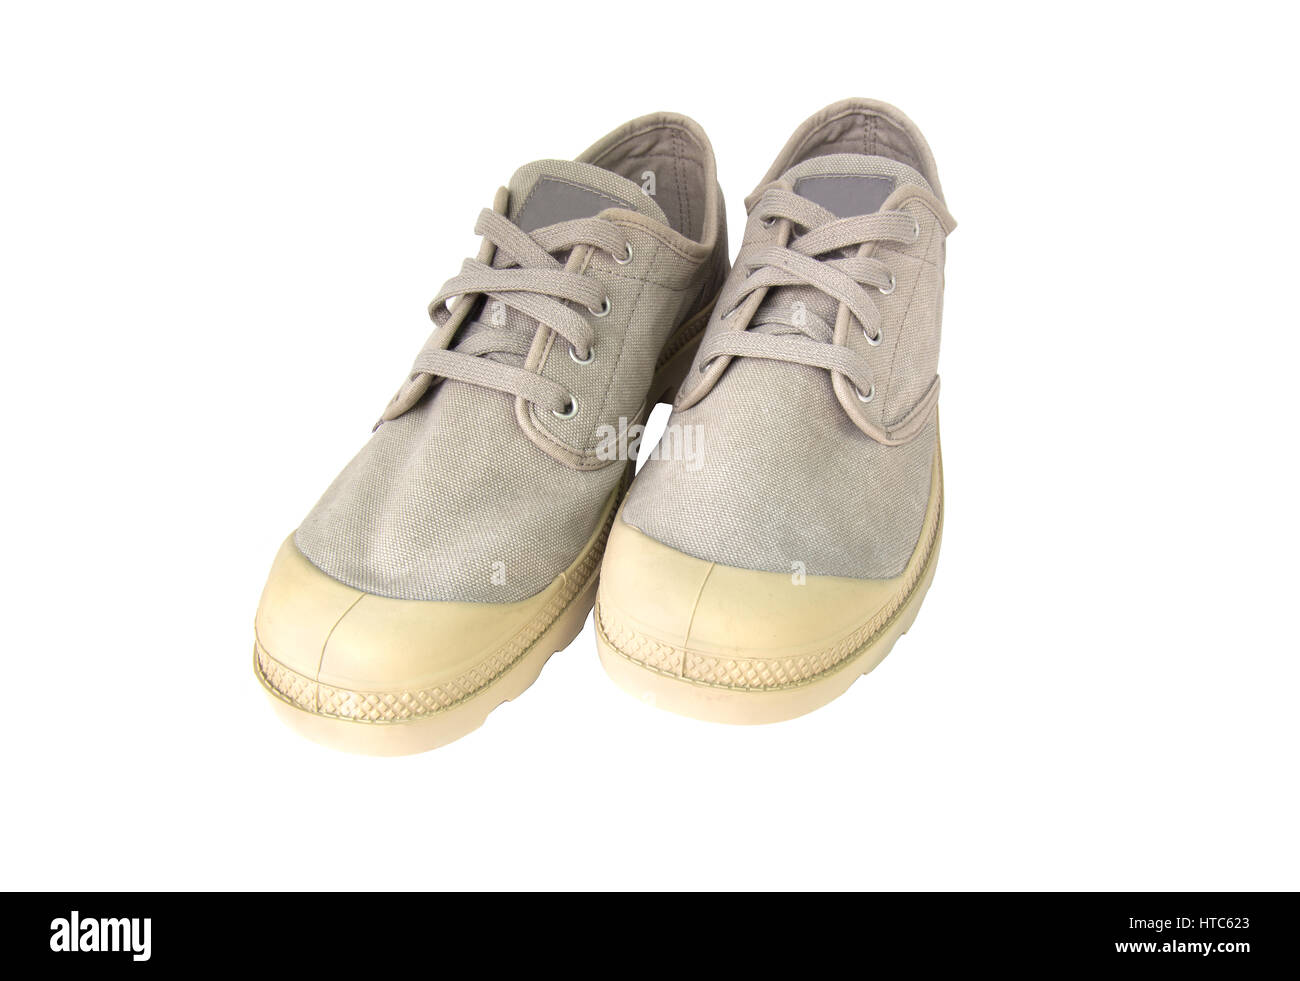 Vintage gray shoes isolated on white background. Stock Photo